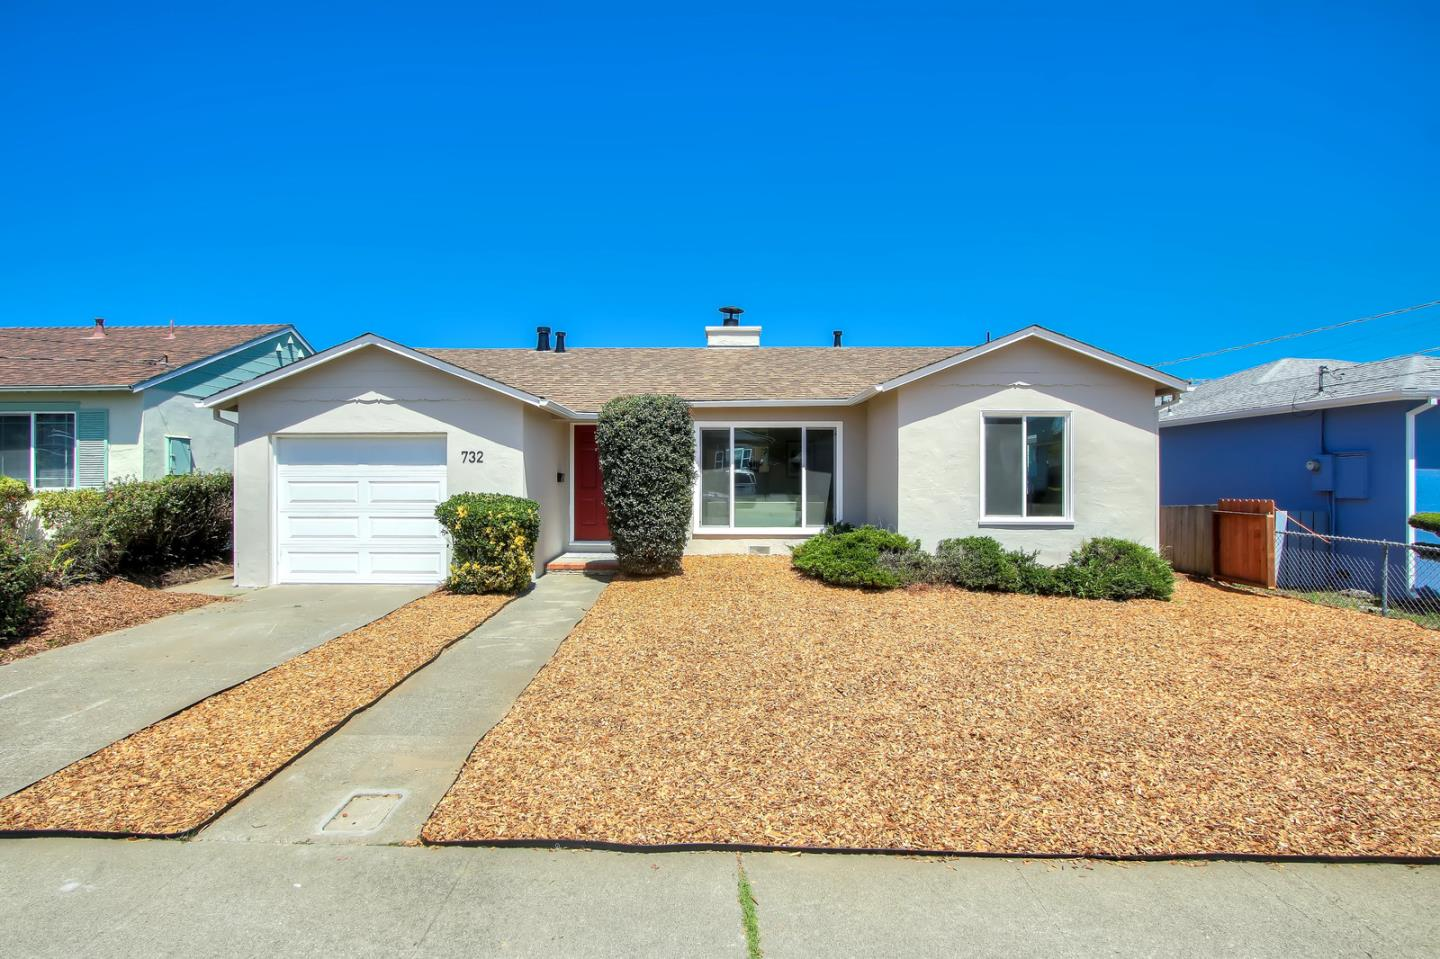 Detail Gallery Image 1 of 1 For 732 Maddux Dr, Daly City,  CA 94015 - 3 Beds | 1 Baths